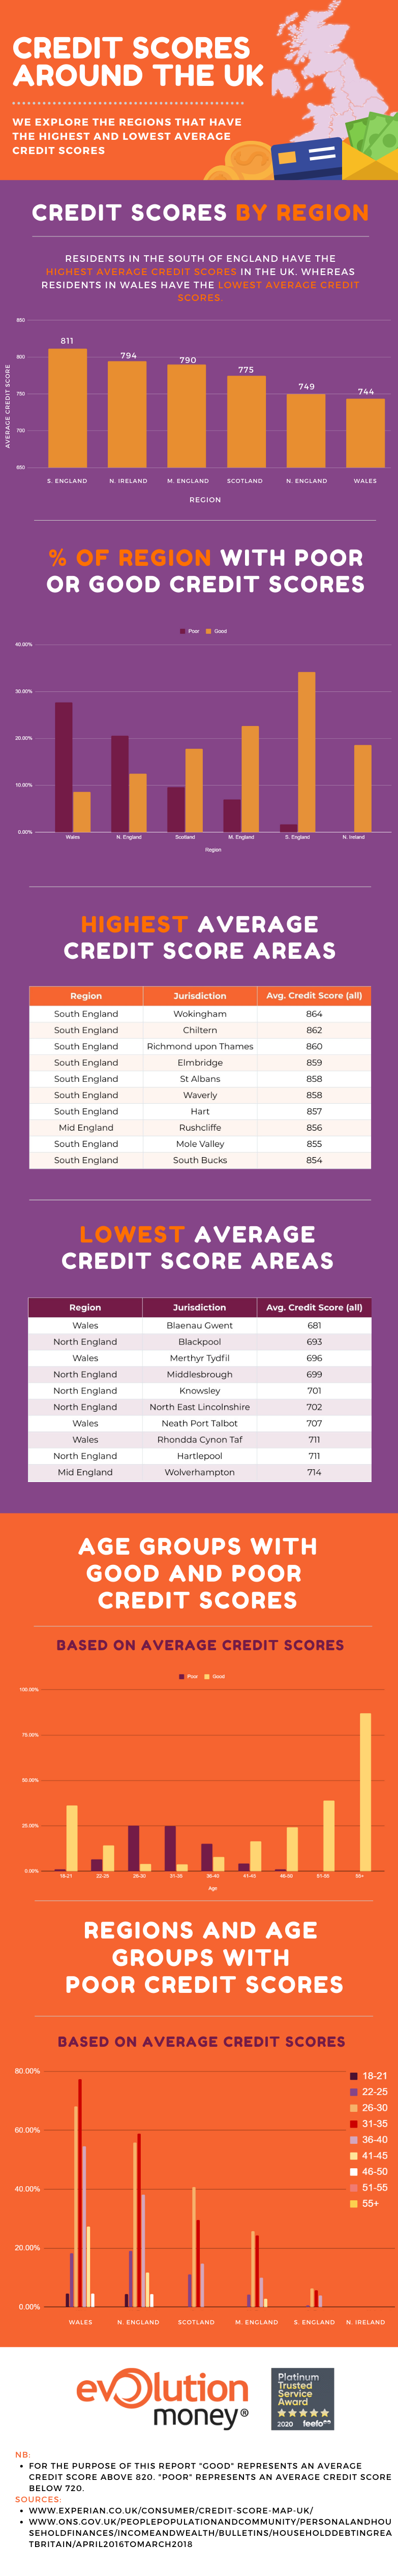 We explore the regions that have the highest and lowest average credit scores